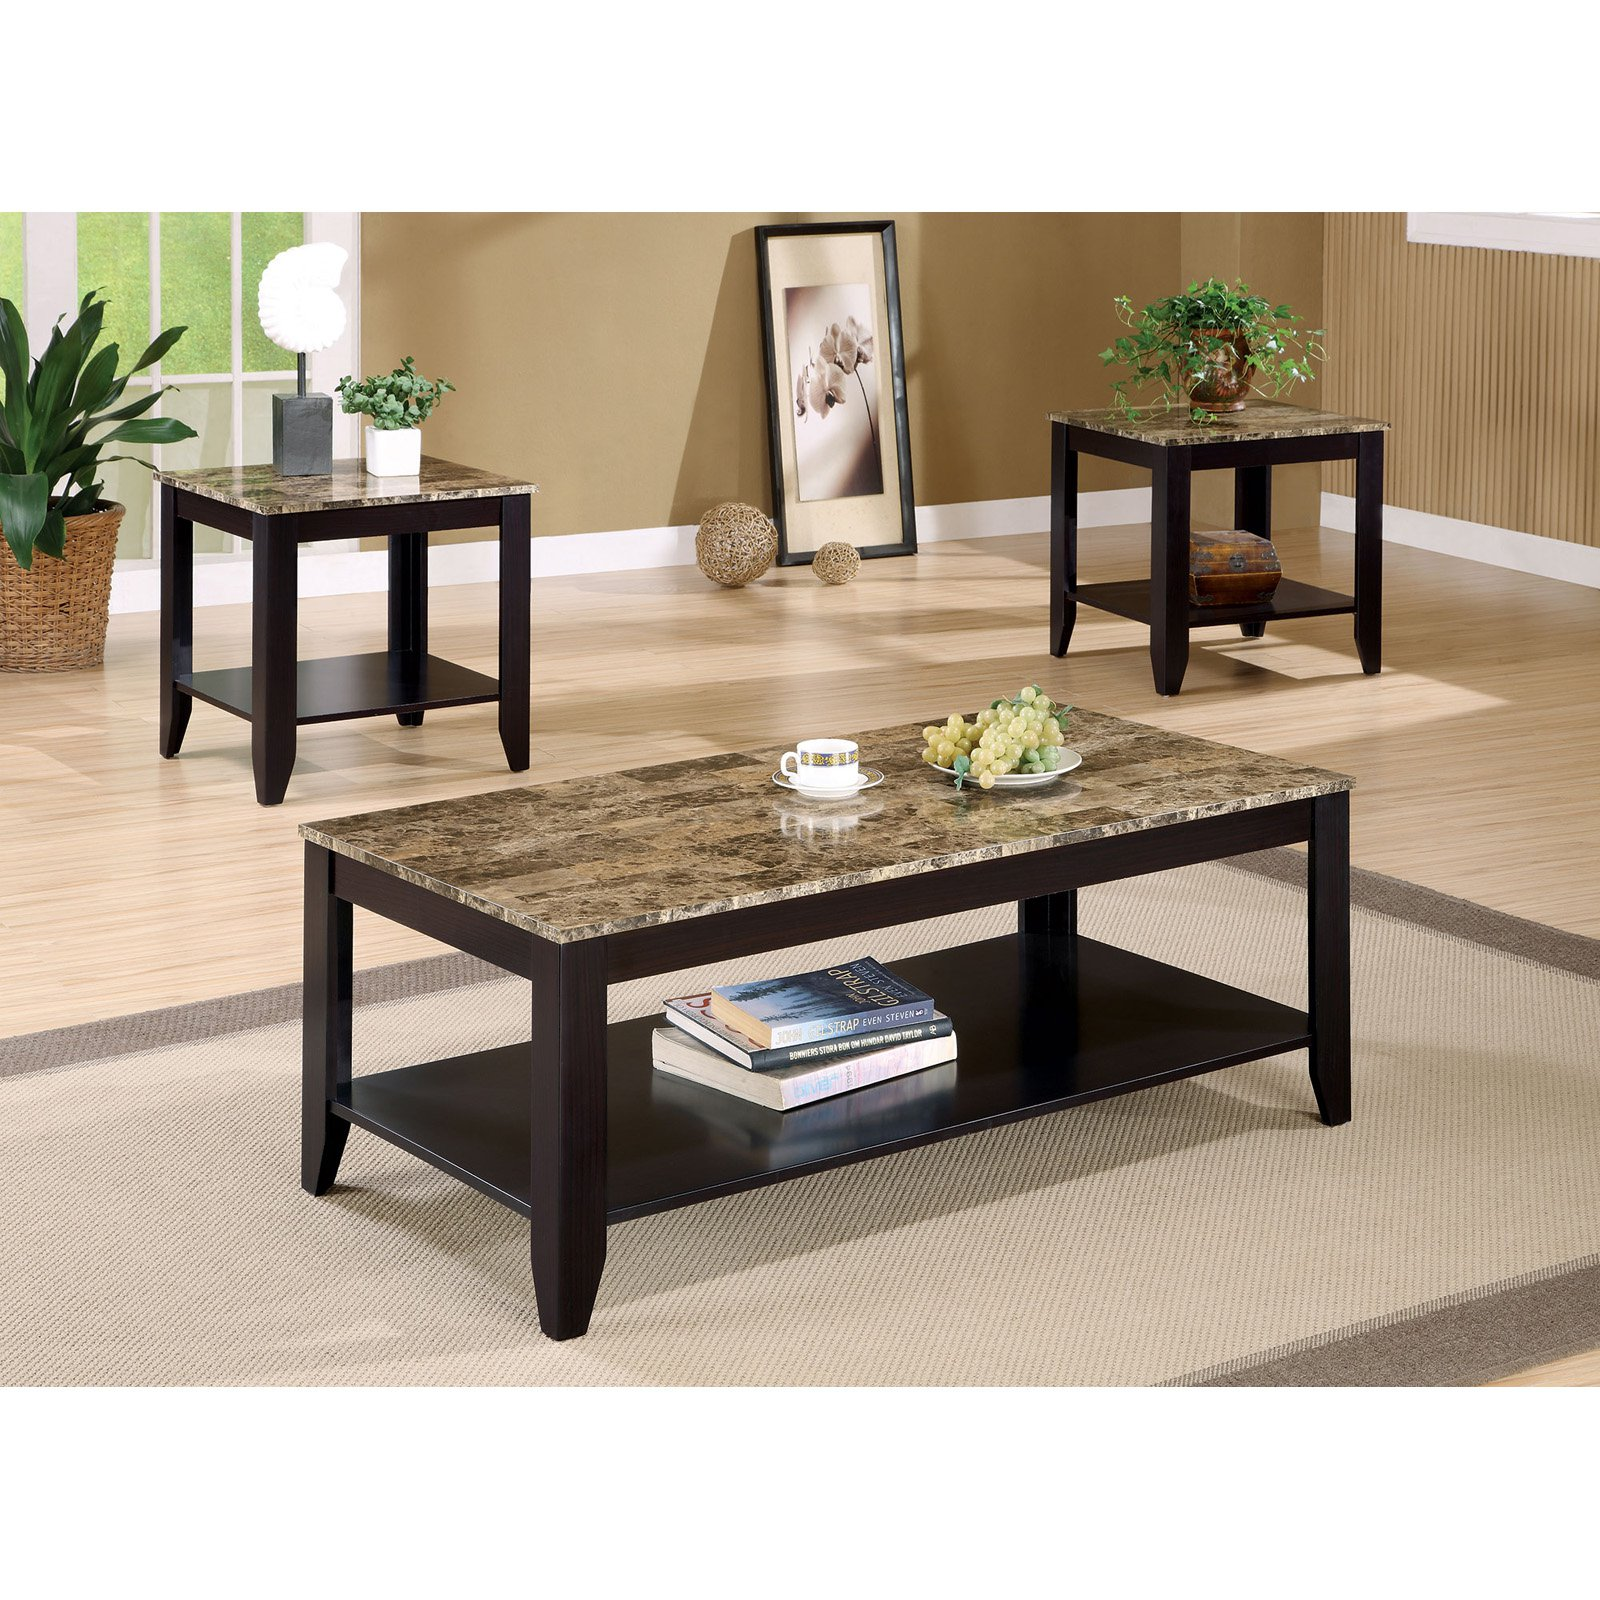 Coaster Furniture 3 Piece Coffee Table Set with Faux Marble Top